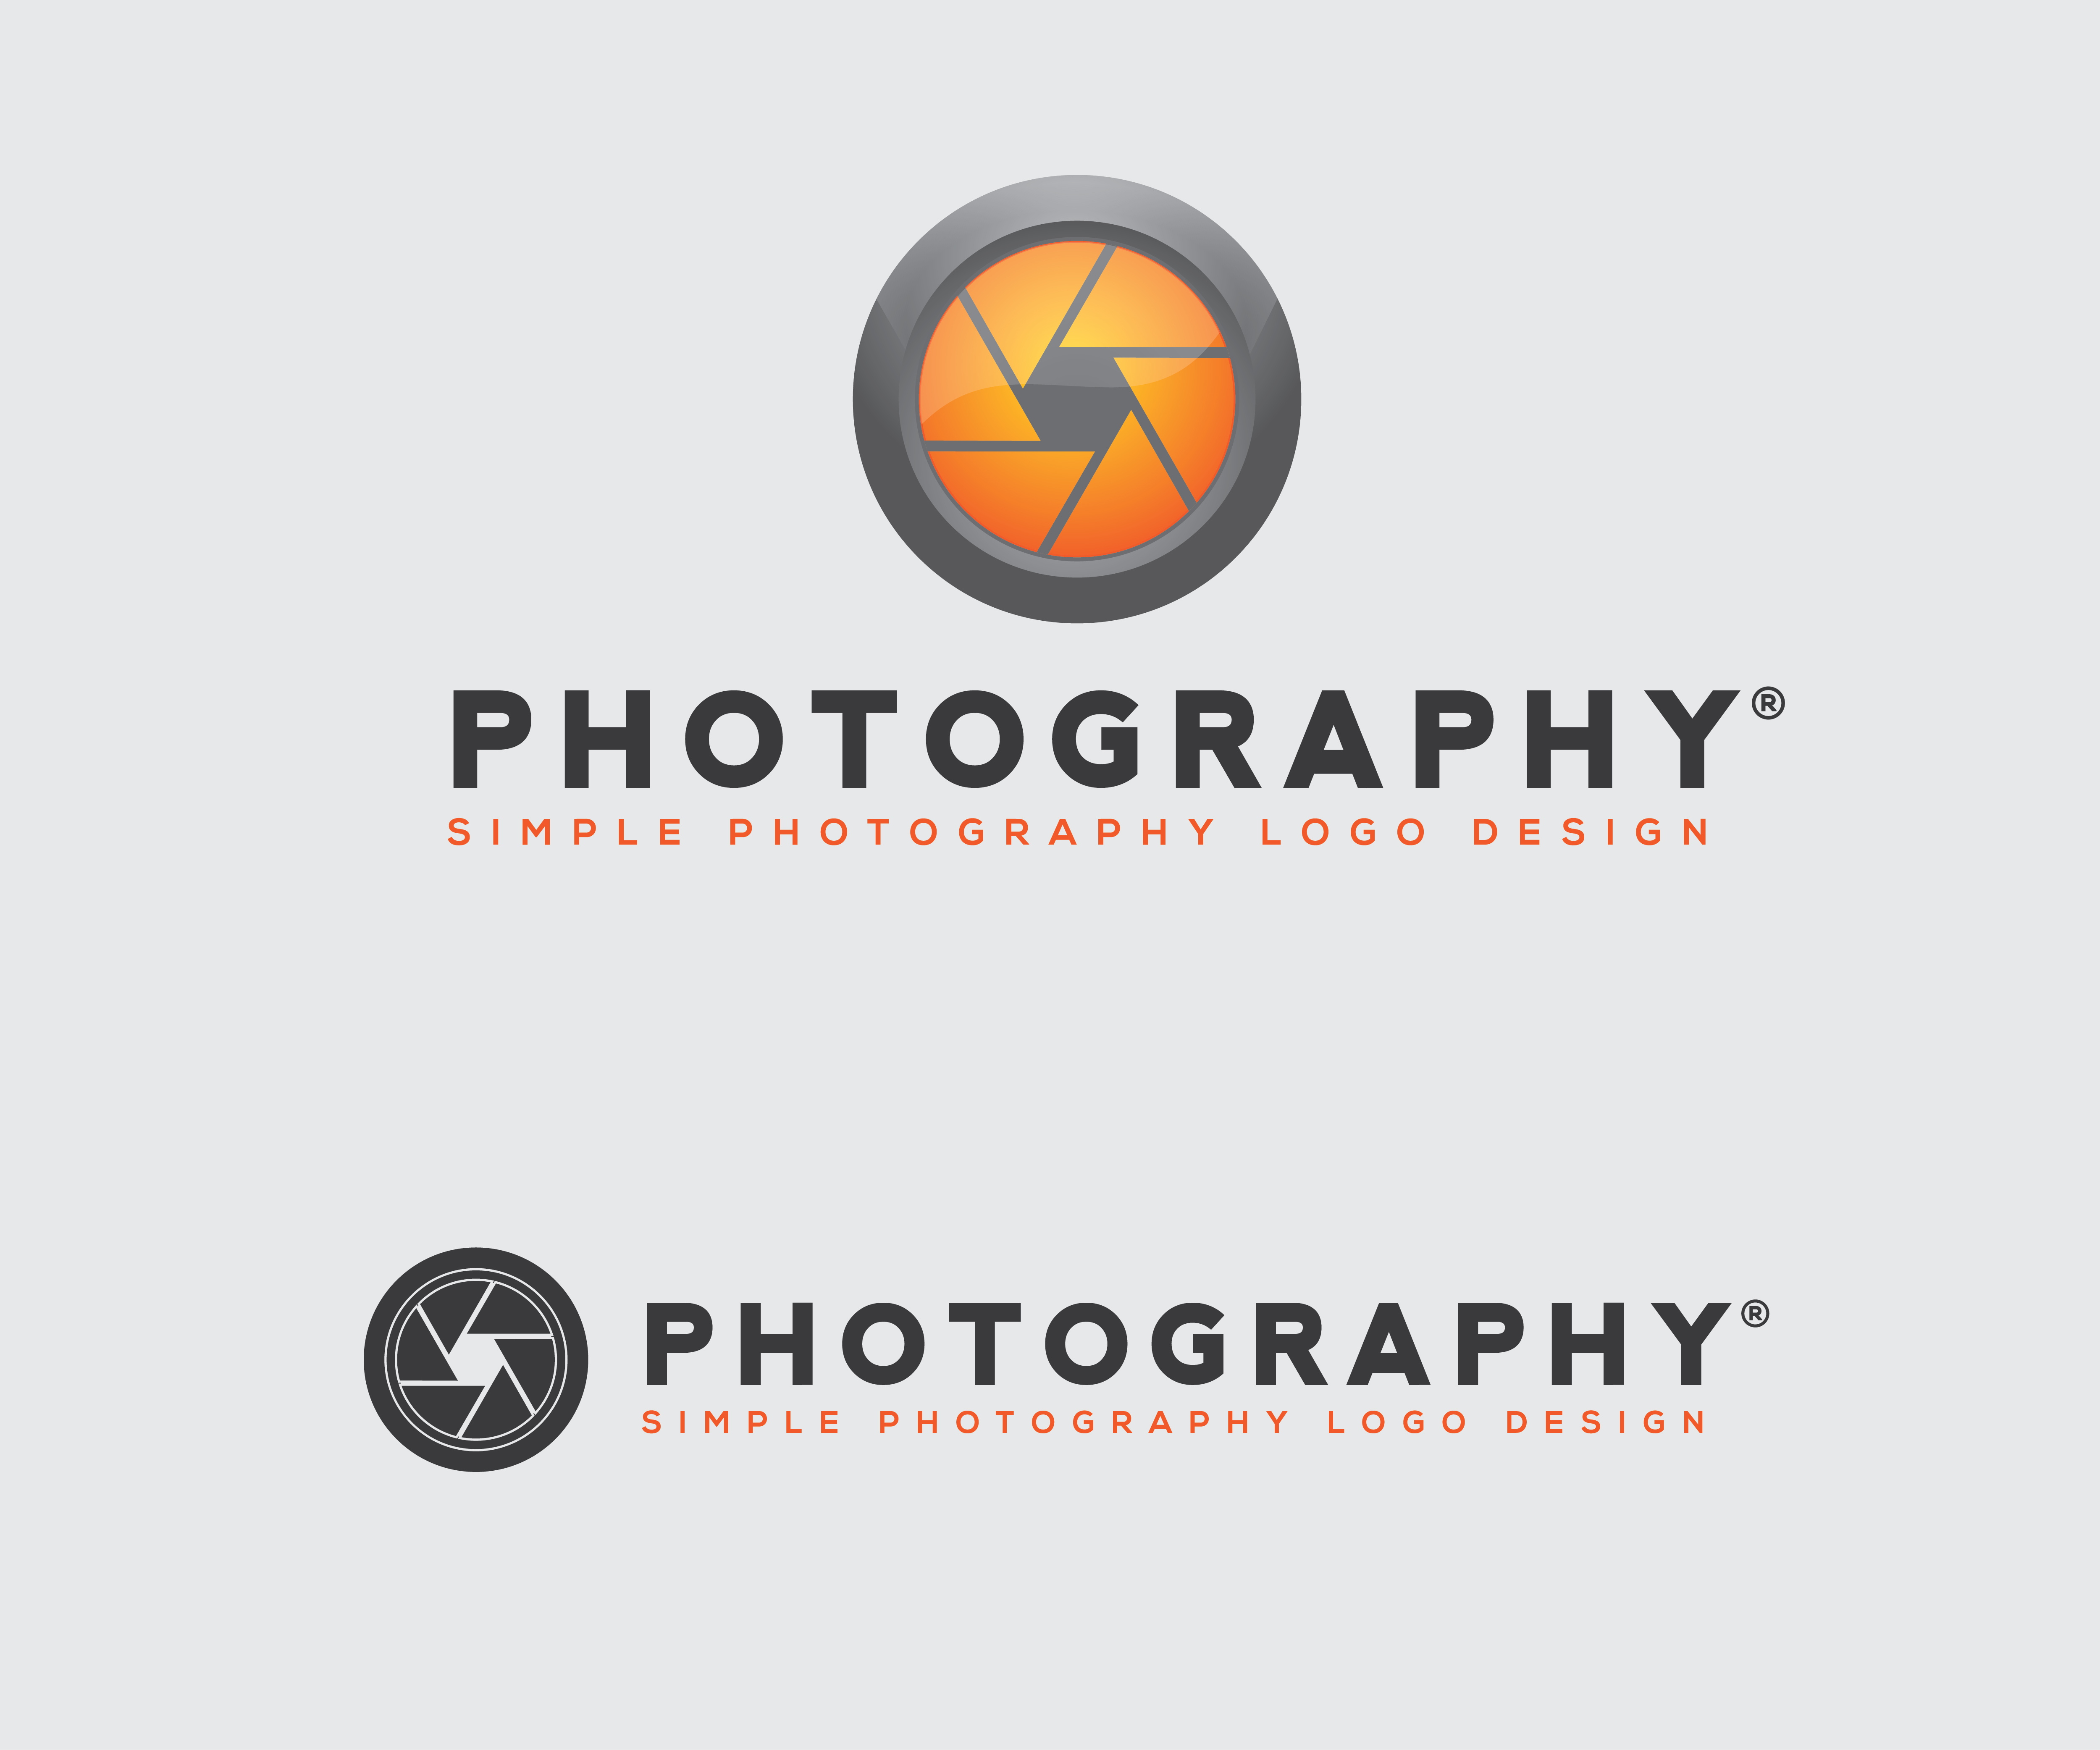 Free photography logo designs by alfiansaputra on deviantart Logo suggestions free